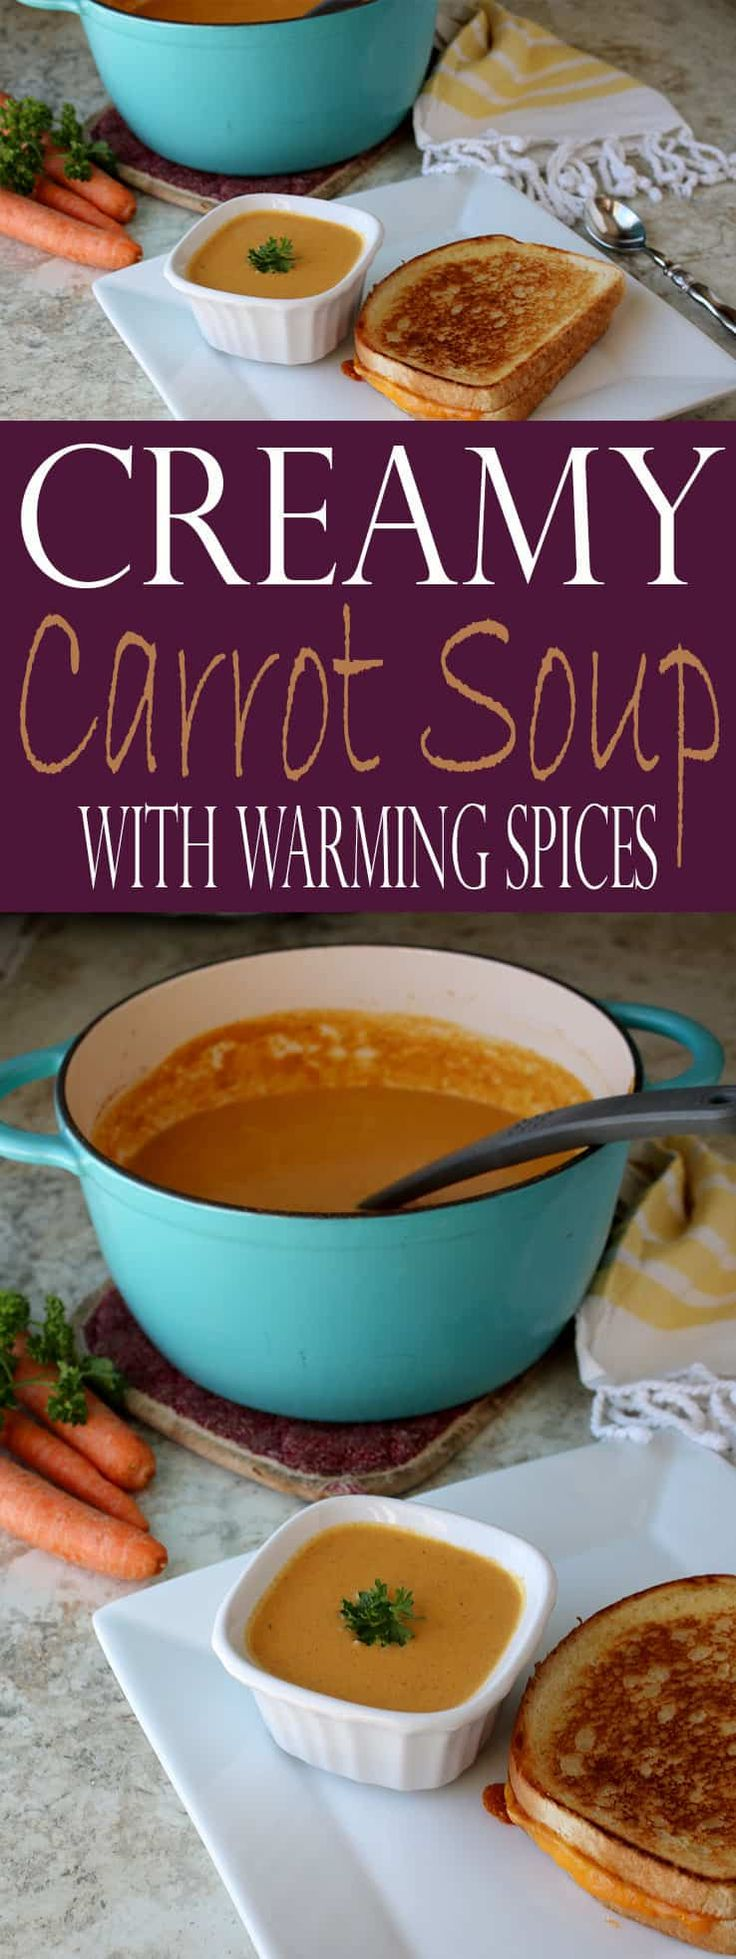 Creamy Carrot Soup with Warming Spices is a warming soup recipe (with step by step photos) you'll find yourself making over and over again in the colder months. The sweetness of the carrots pairs perfectly with the sweet-spiciness of ginger, cinnamon, cumin, and allspice. #souprecipes #roasted #fallflavors #warmingspices